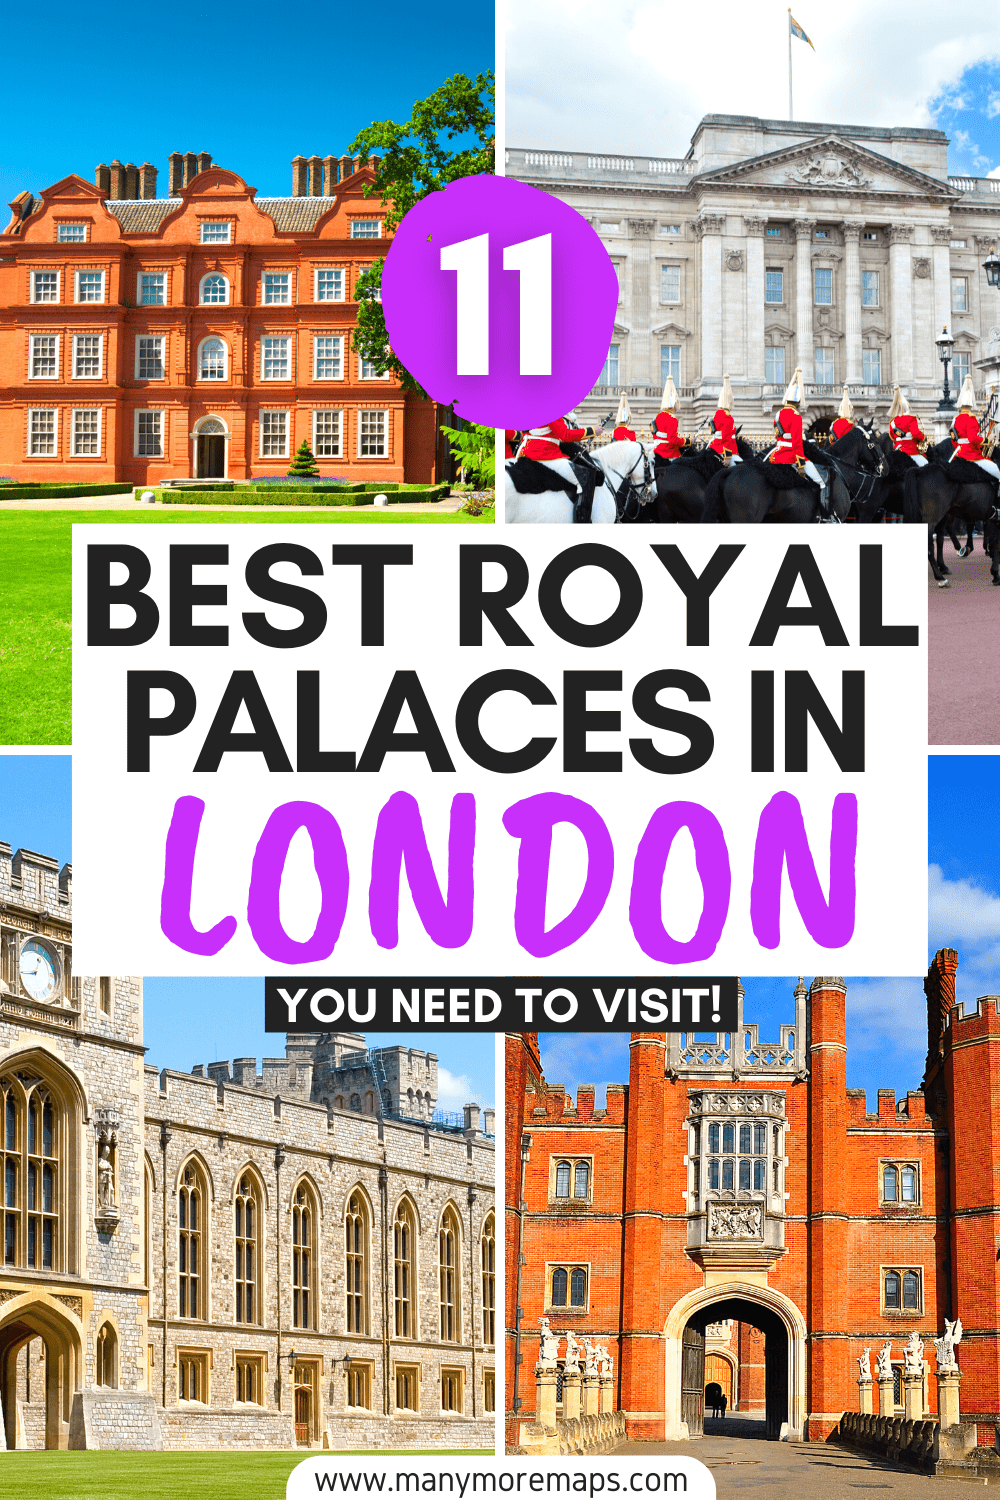 The very best royal palaces and attractions that you can't miss on a trip to London, England! Buckingham Palace, Houses of Parliament, Kew Gardens and Kew Palace, Kensington Palace, Tudor palaces and history in London, Lambeth Palace, Windsor Castle, Hampton Court Palace, Eltham Palace, the Banqueting House, royal family attractions in the UK, London royal guards, changing of the guard London, london royal aesthetic, London palace of Westminster, fun things to do in London, what to see in London